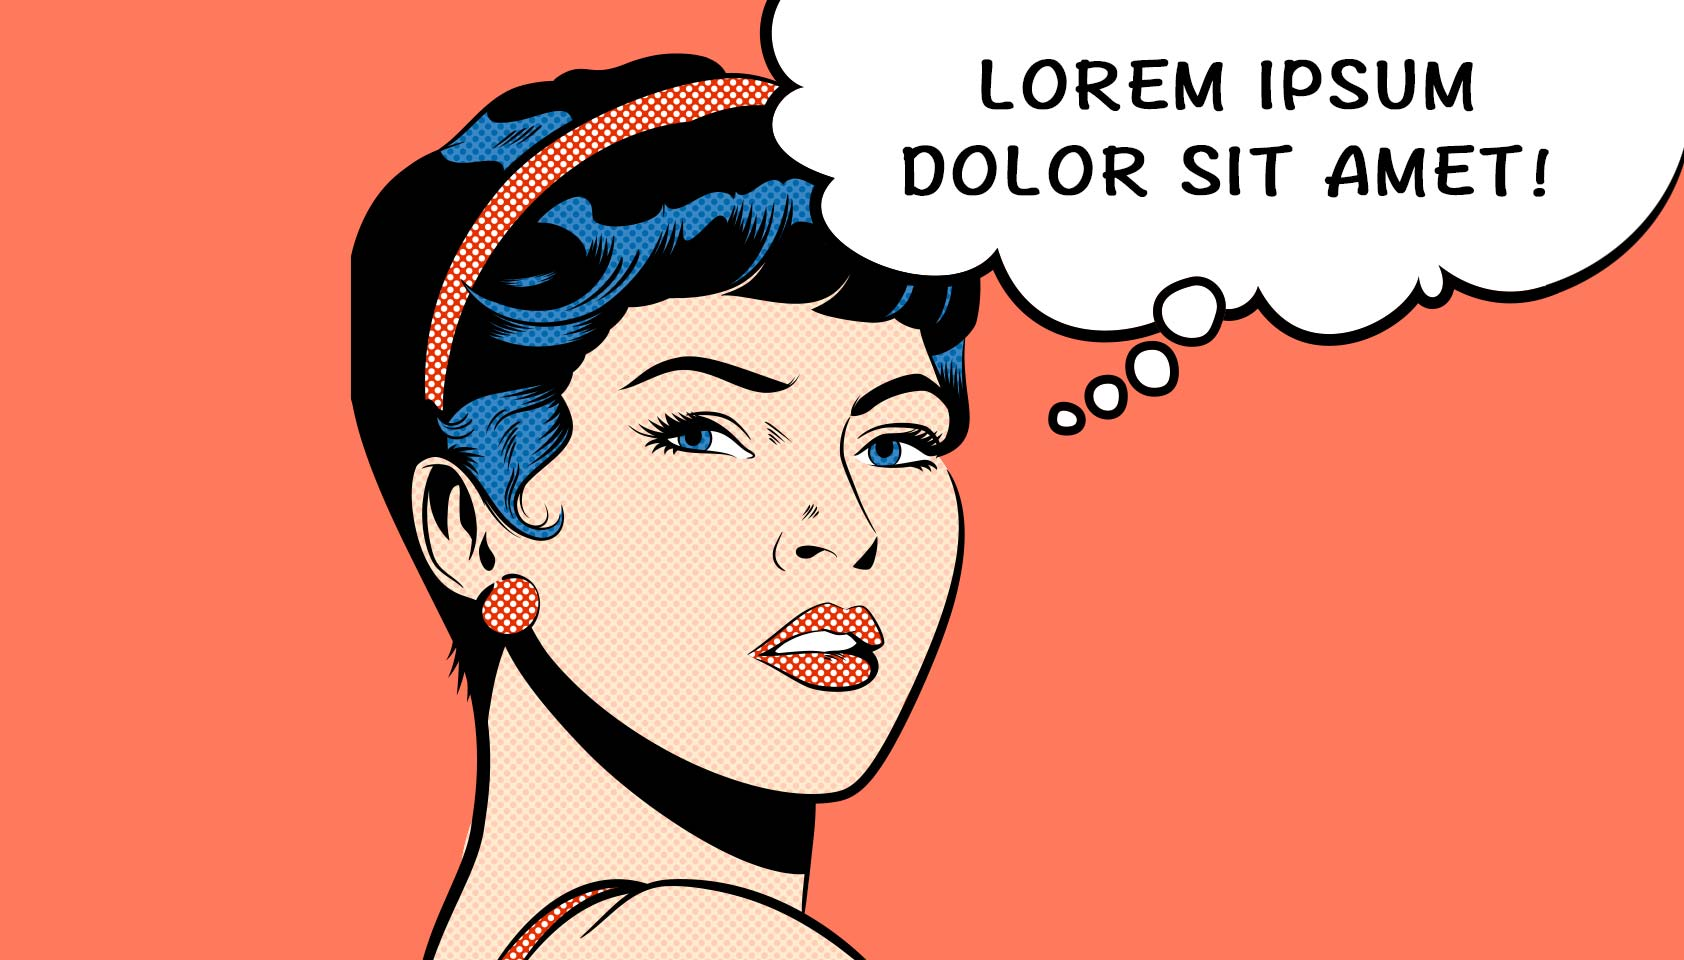 Can we kill off lorem ipsum?